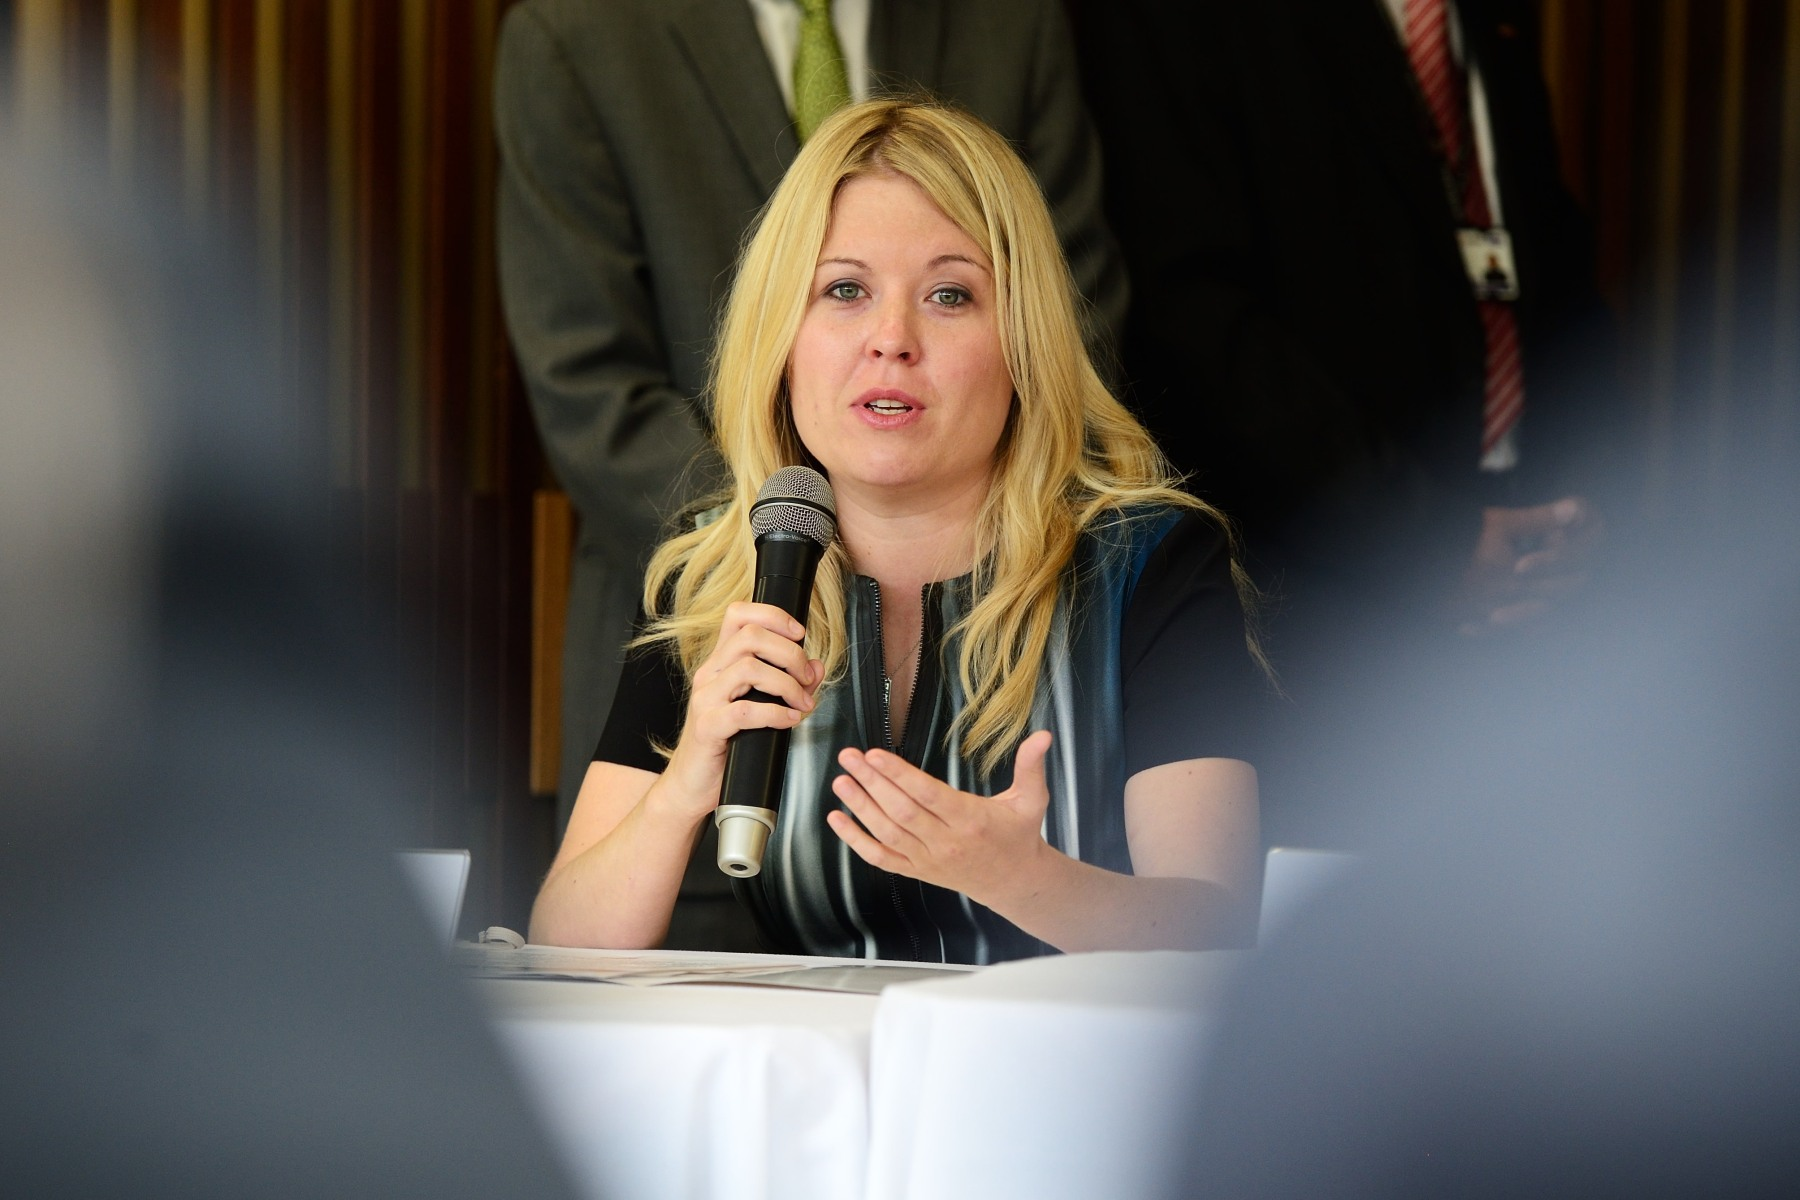 The Honourable Michelle Rempel, Minister of State (Western Economic Diversification), took part in the discussion. Since 2006, the Government of Canada has contributed $34 million in support of Colombia's flagship peacebuilding initiatives such as victims reparations, land restitution, humanitarian demining and demobilization verification.